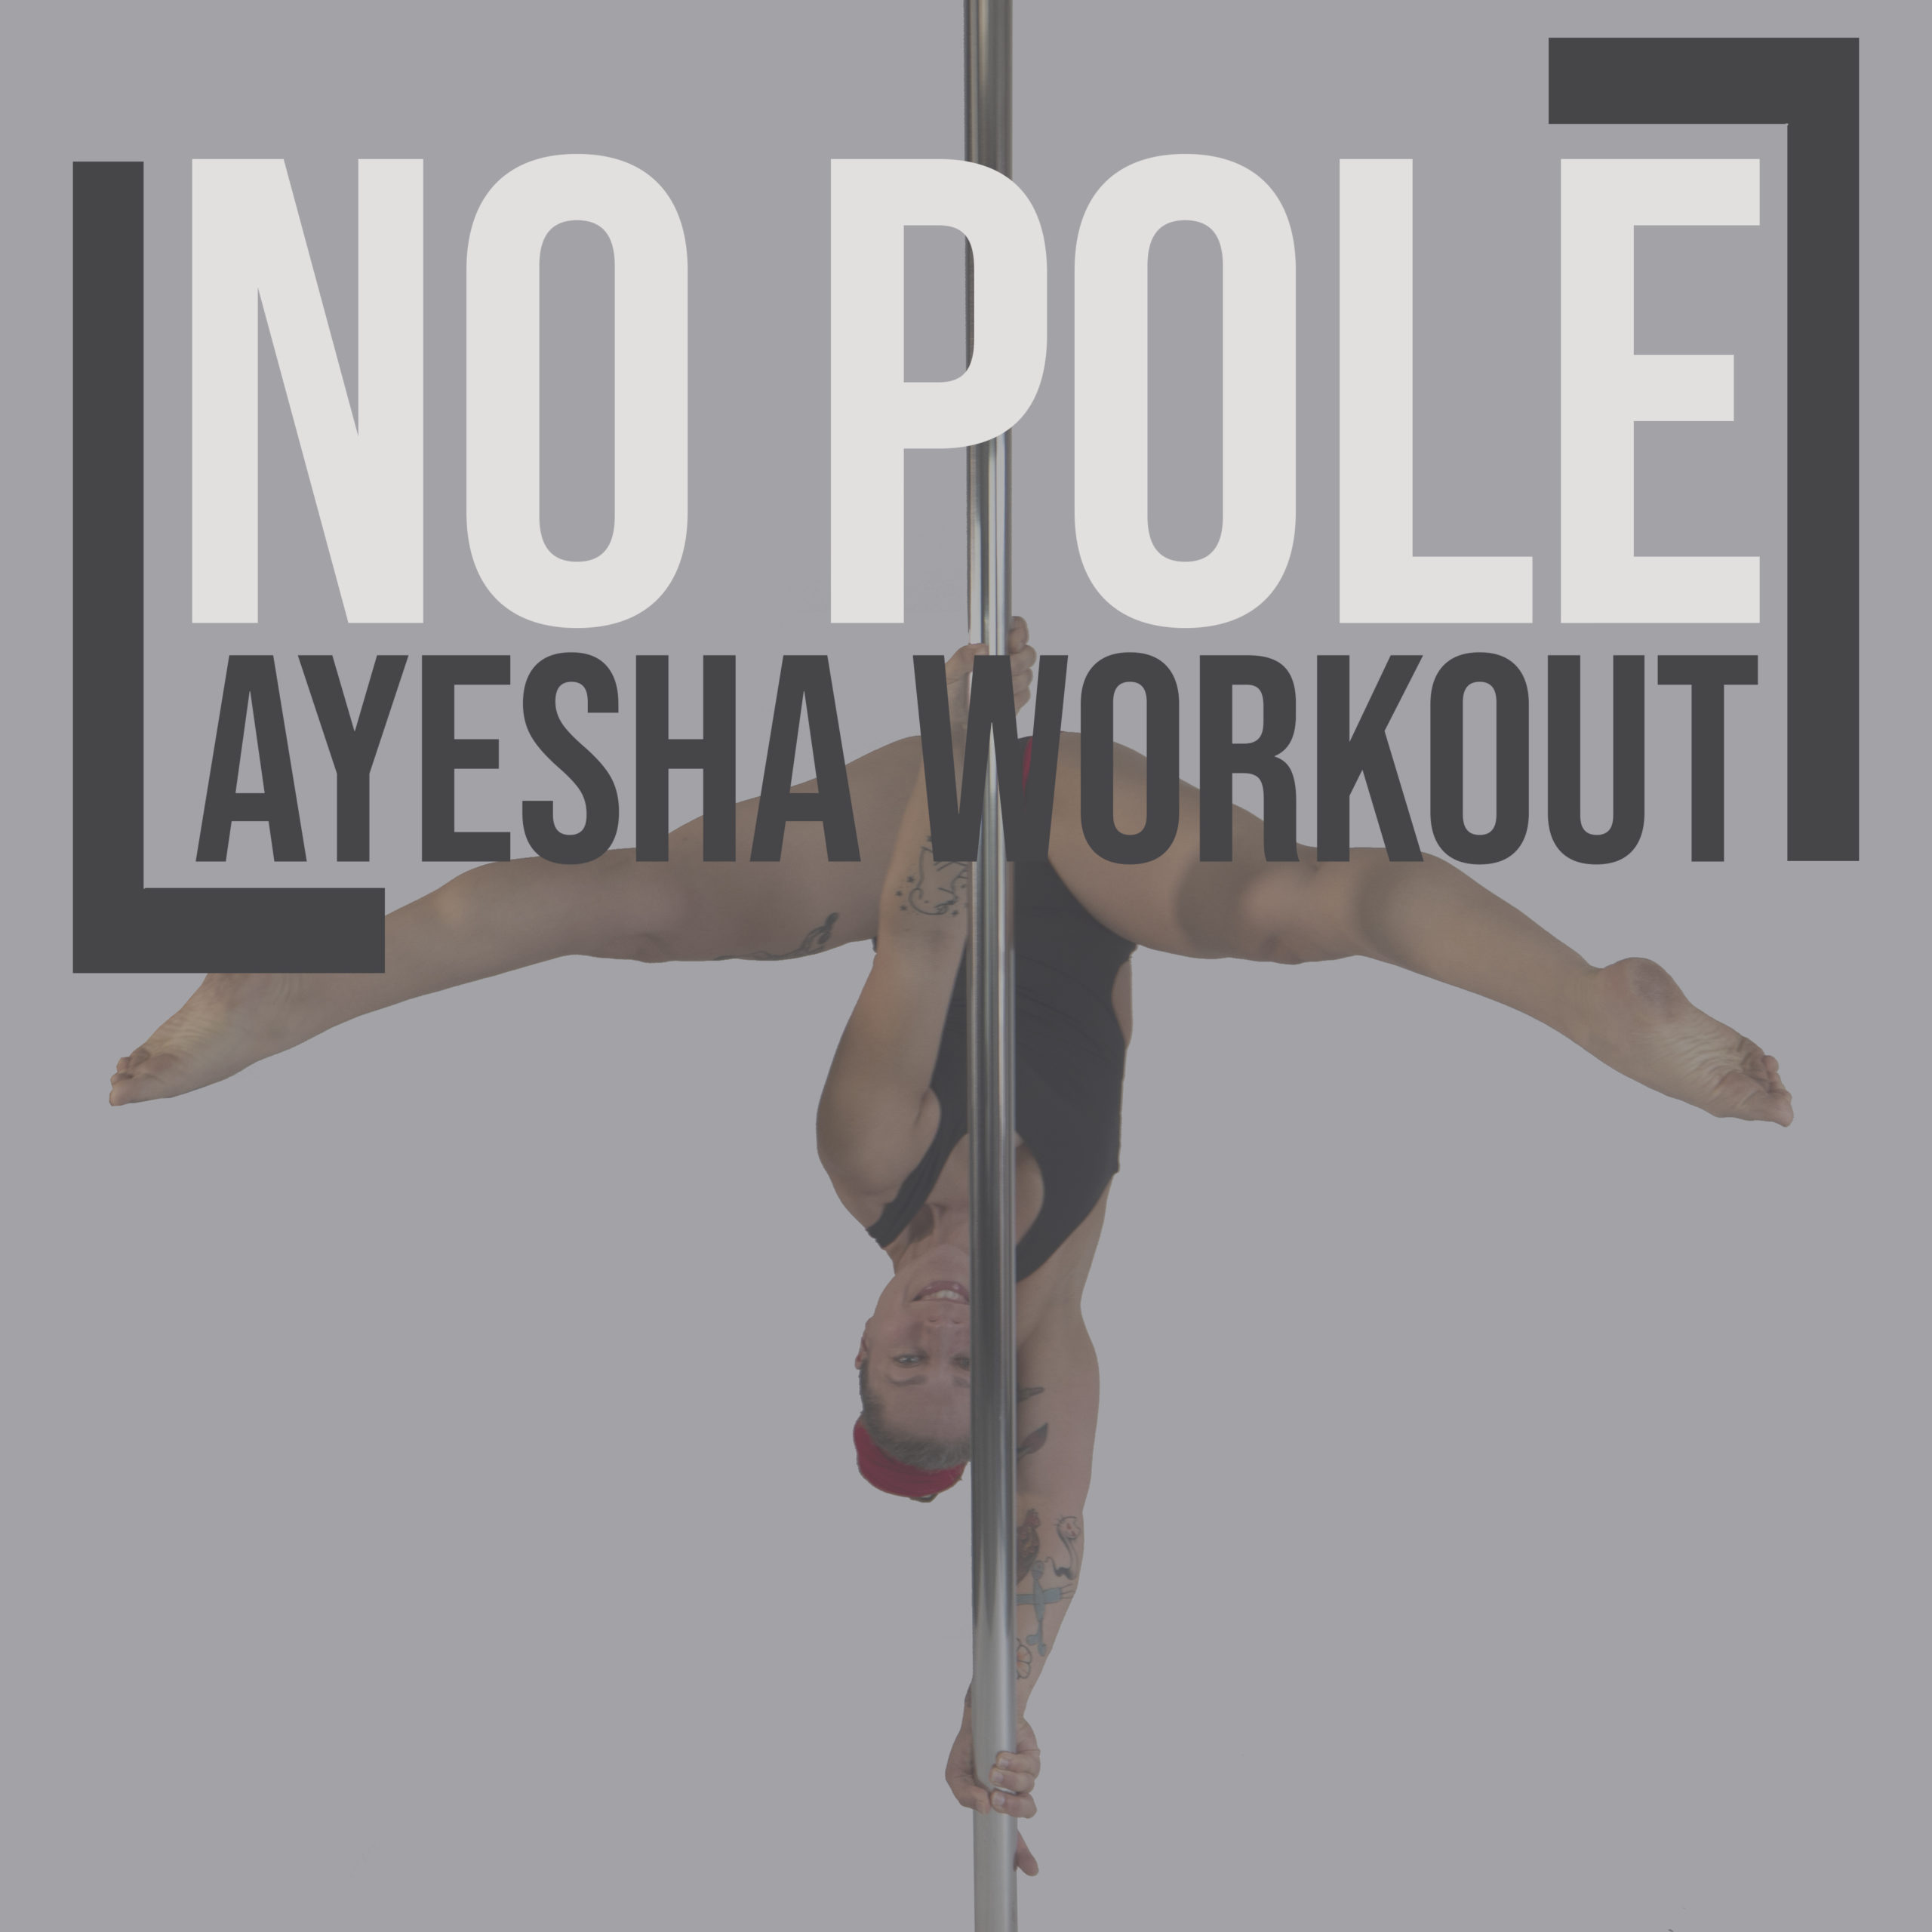 No Pole Ayesha workout!